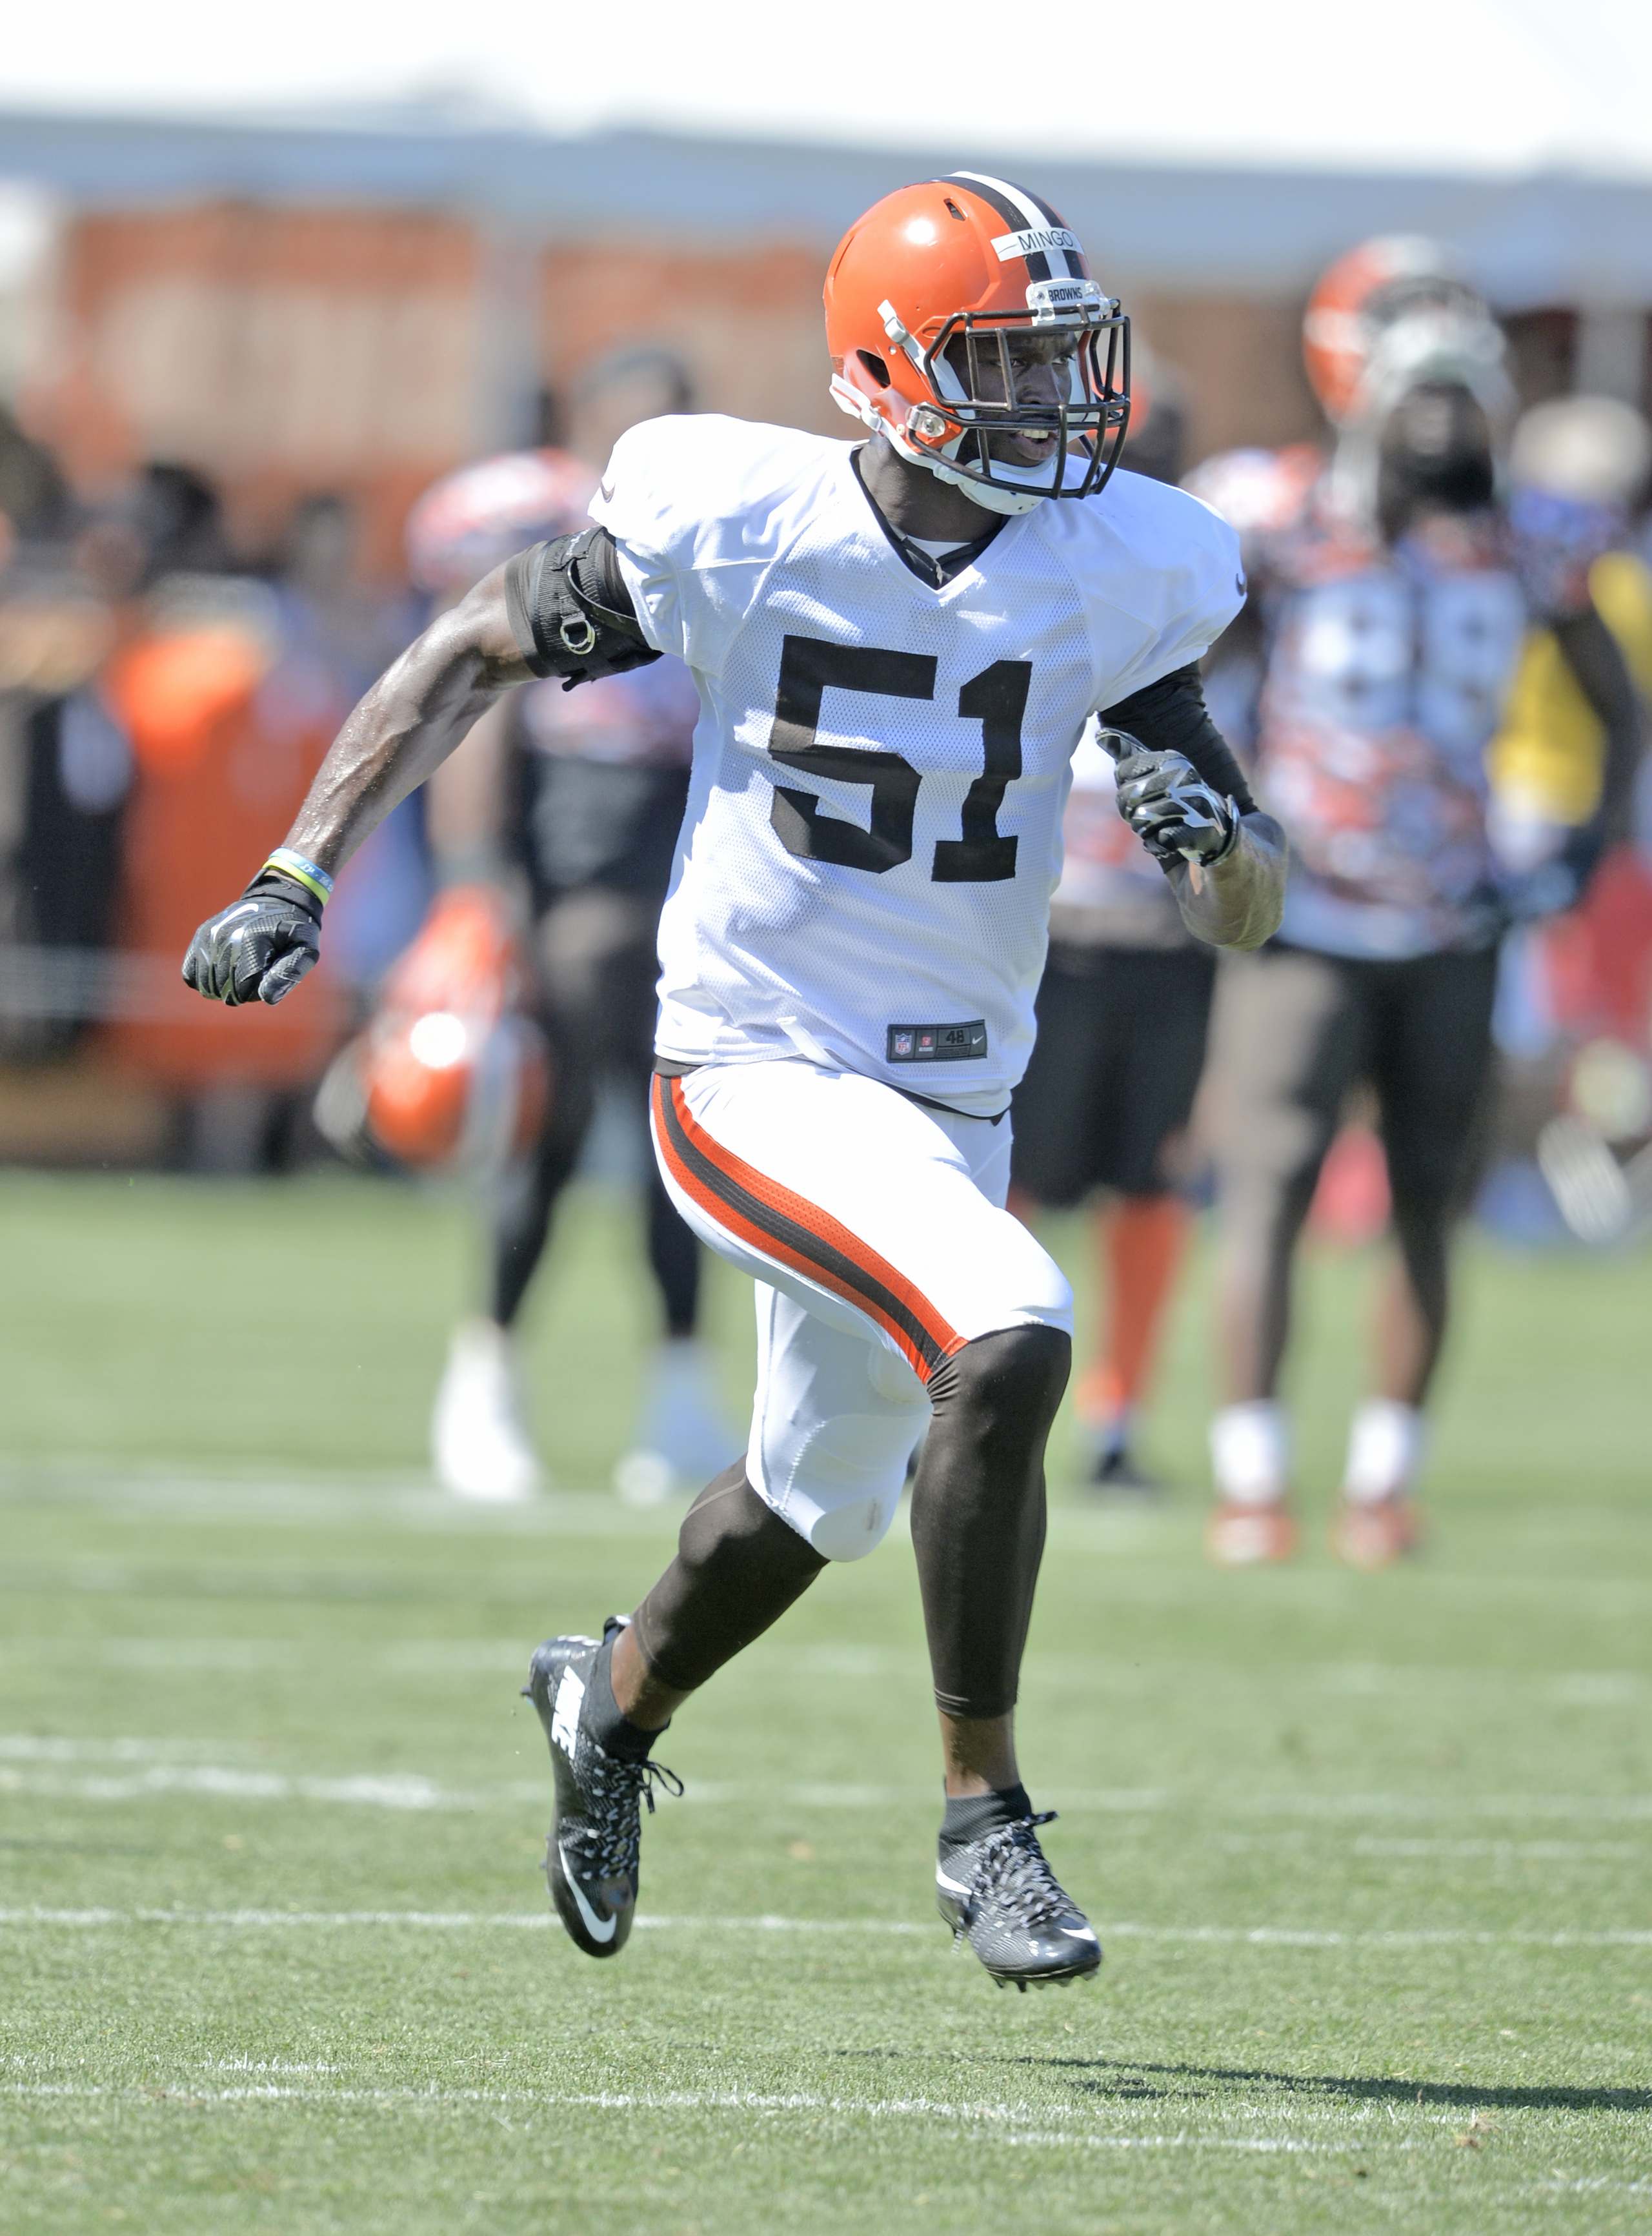 FILE - In this Aug. 4, 2015, file photo, Cleveland Browns outside linebacker Barkevious Mingo runs on the field during practice at NFL football training camp in Berea, Ohio. Browns linebacker Barkevious Mingo will undergo arthroscopic surgery on his right